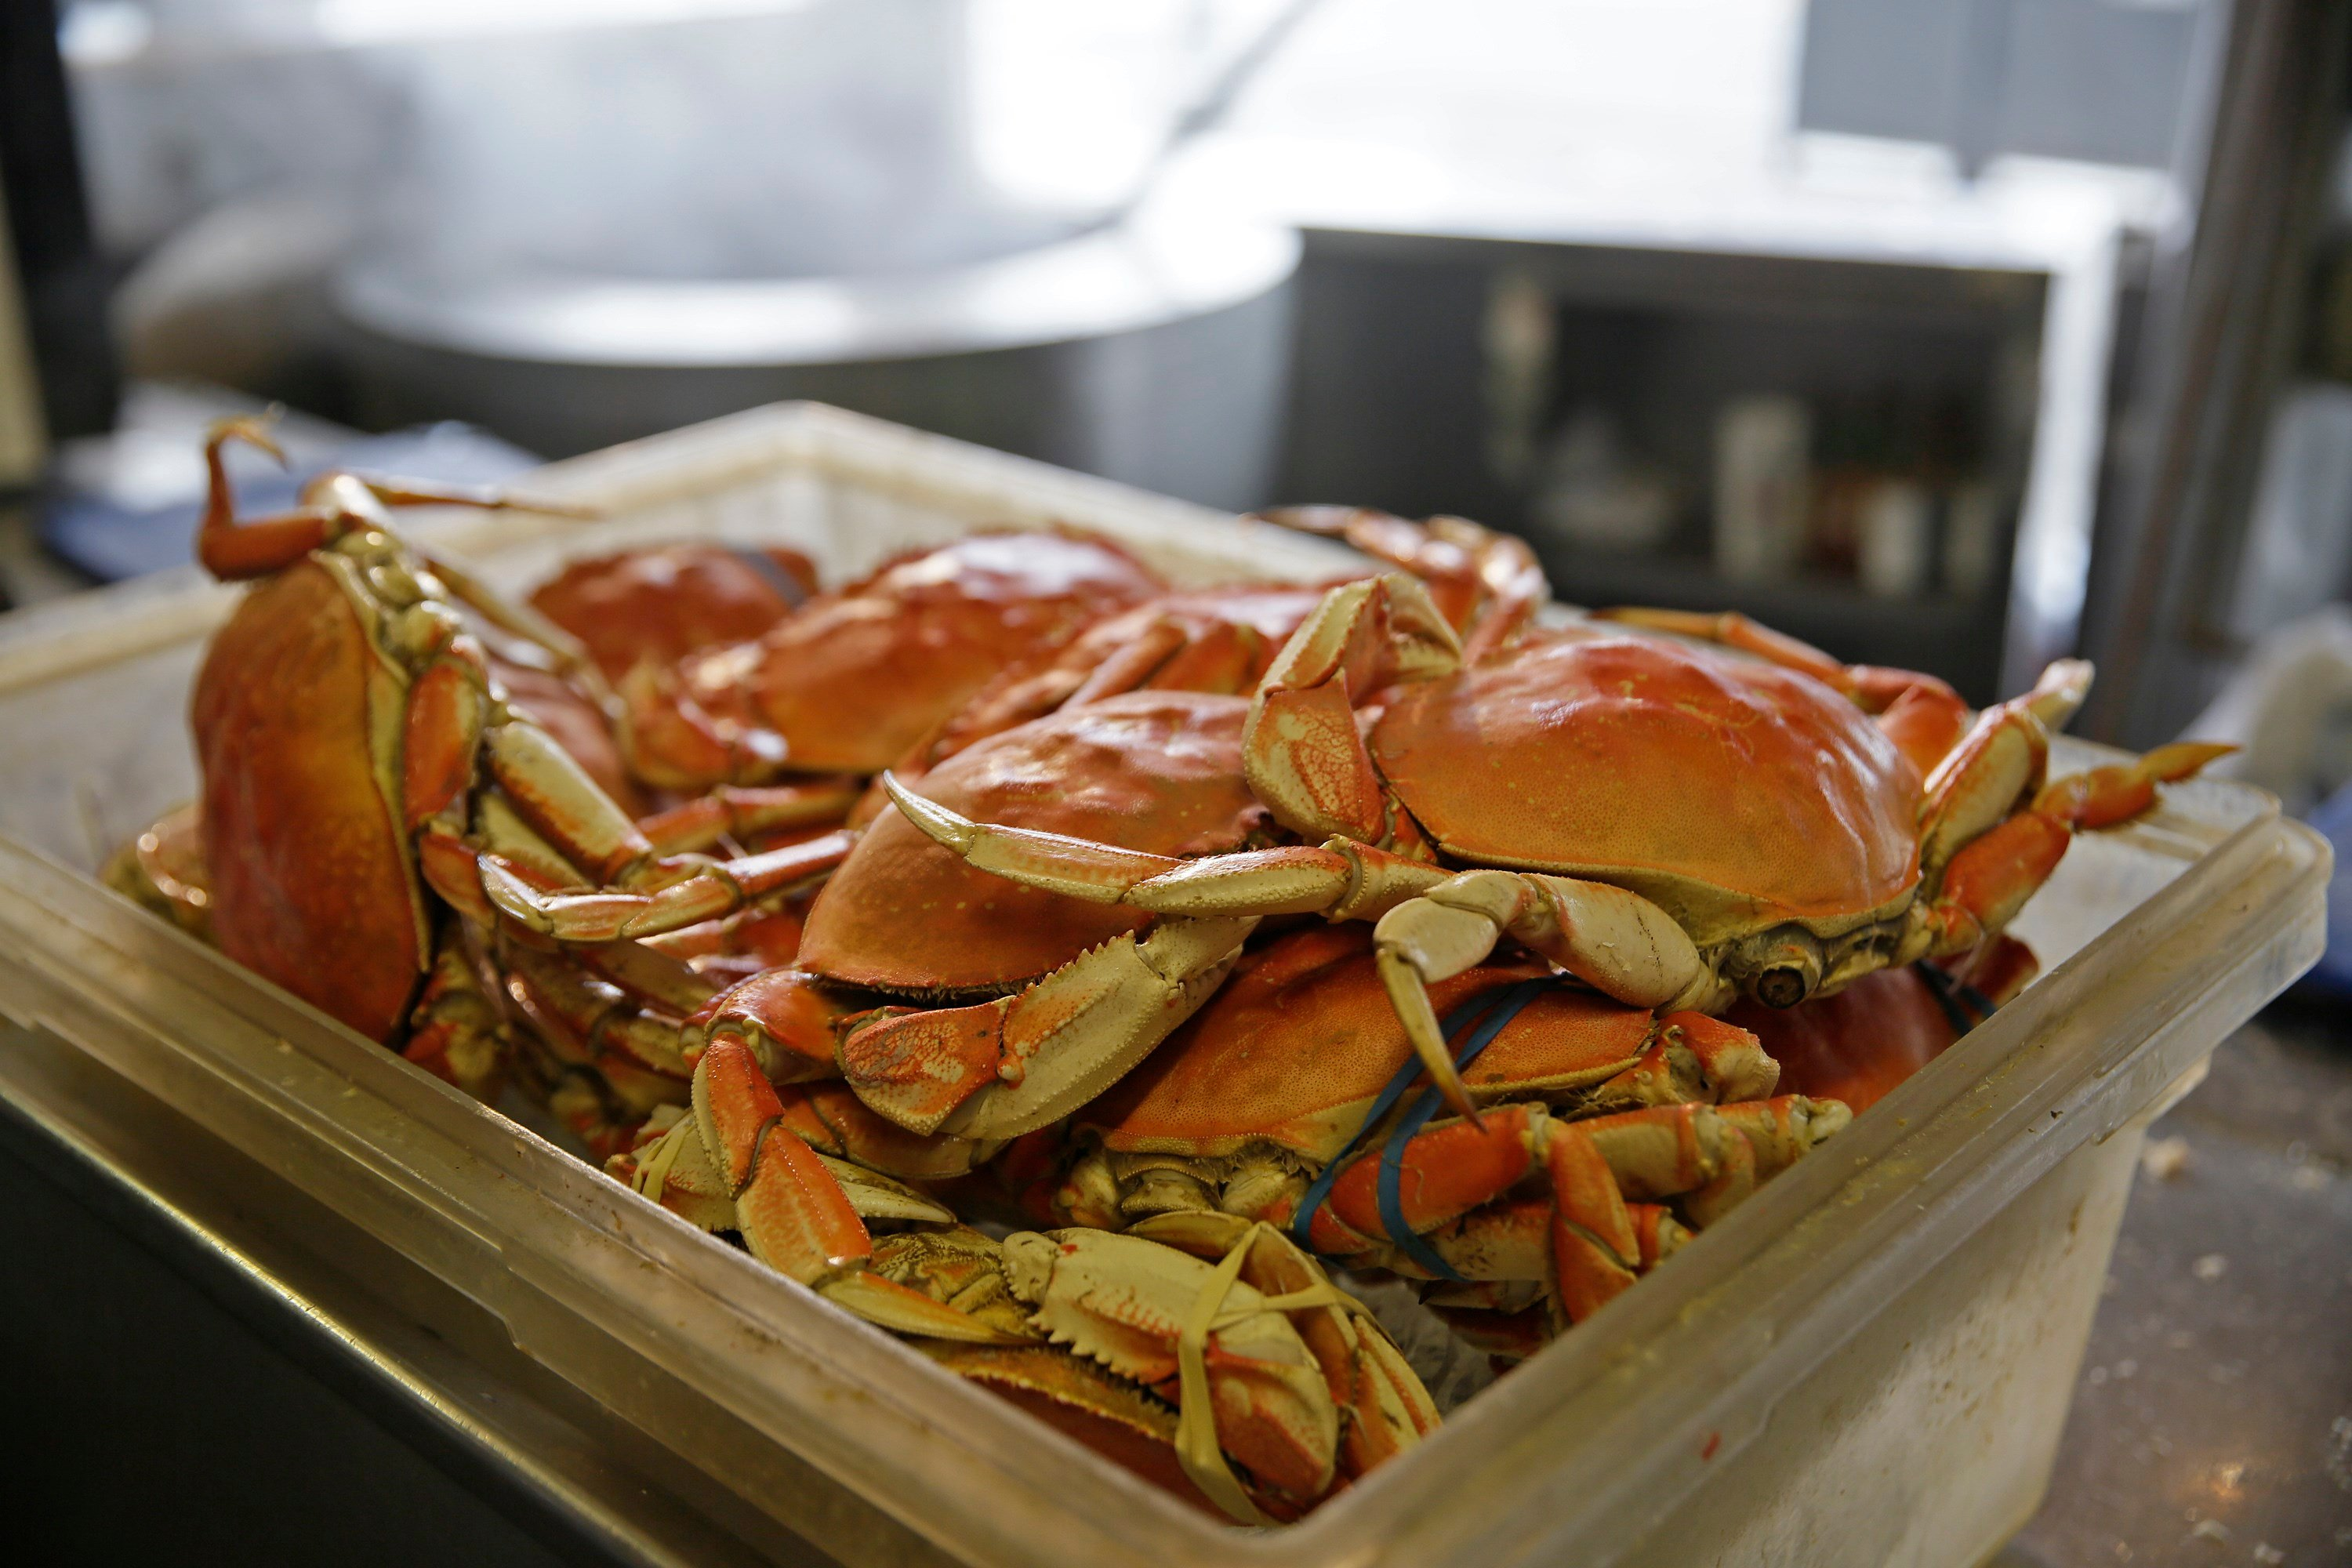 The strike started Dec. 28, 2016, after Pacific Choice Seafood in Humboldt County, Calif., offered to pay $2.75 a pound for the tasty crustacean. Crabbers whose seasons had already opened had negotiated a price of $3 per pound. (AP Photo/Eric Risberg)